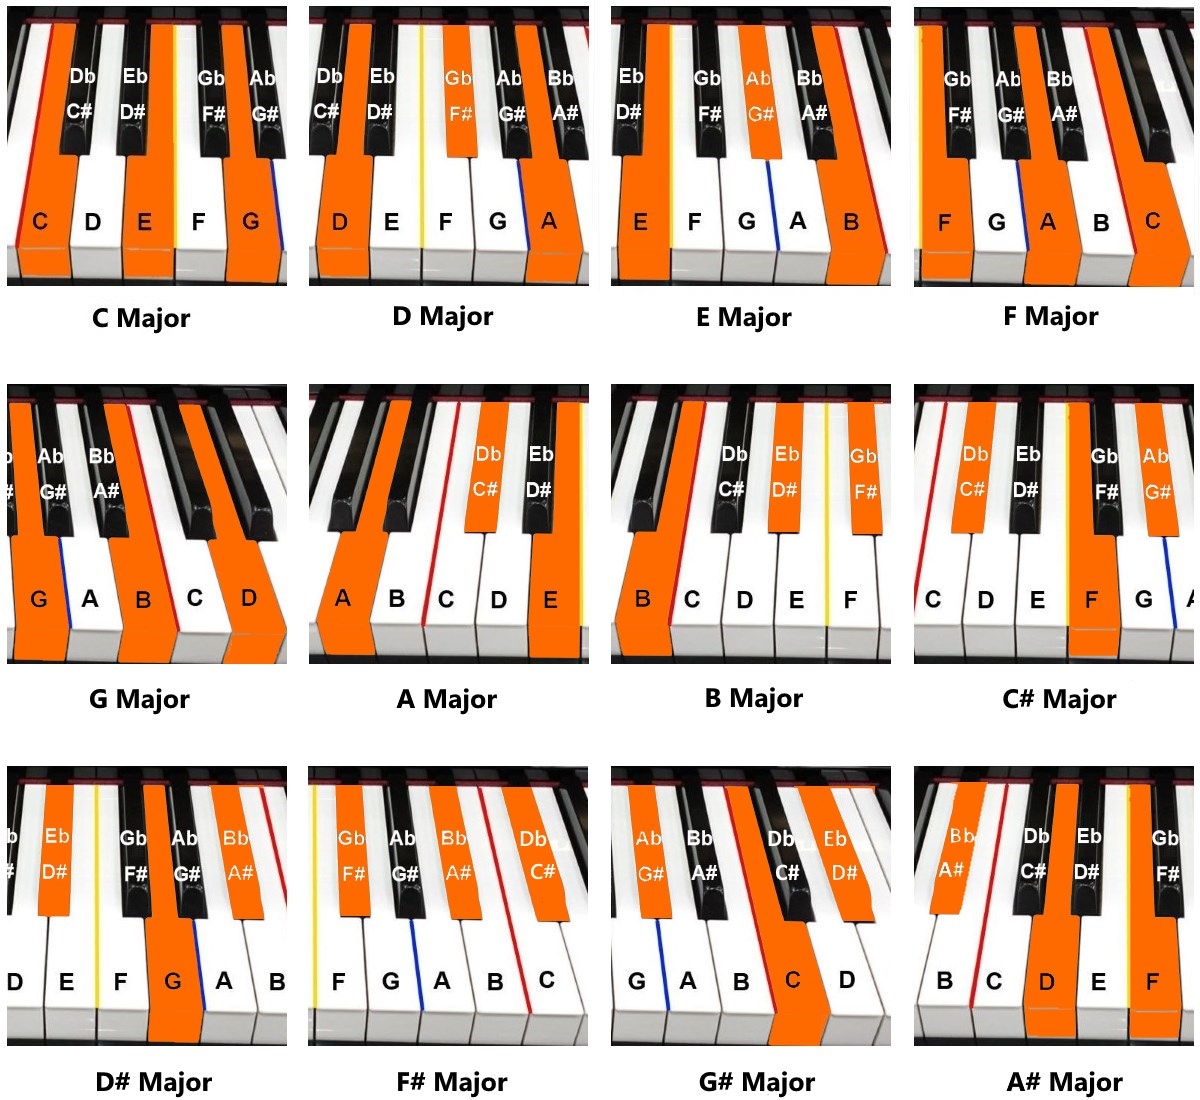 Piano Chords - Piano Tutorials for Beginners